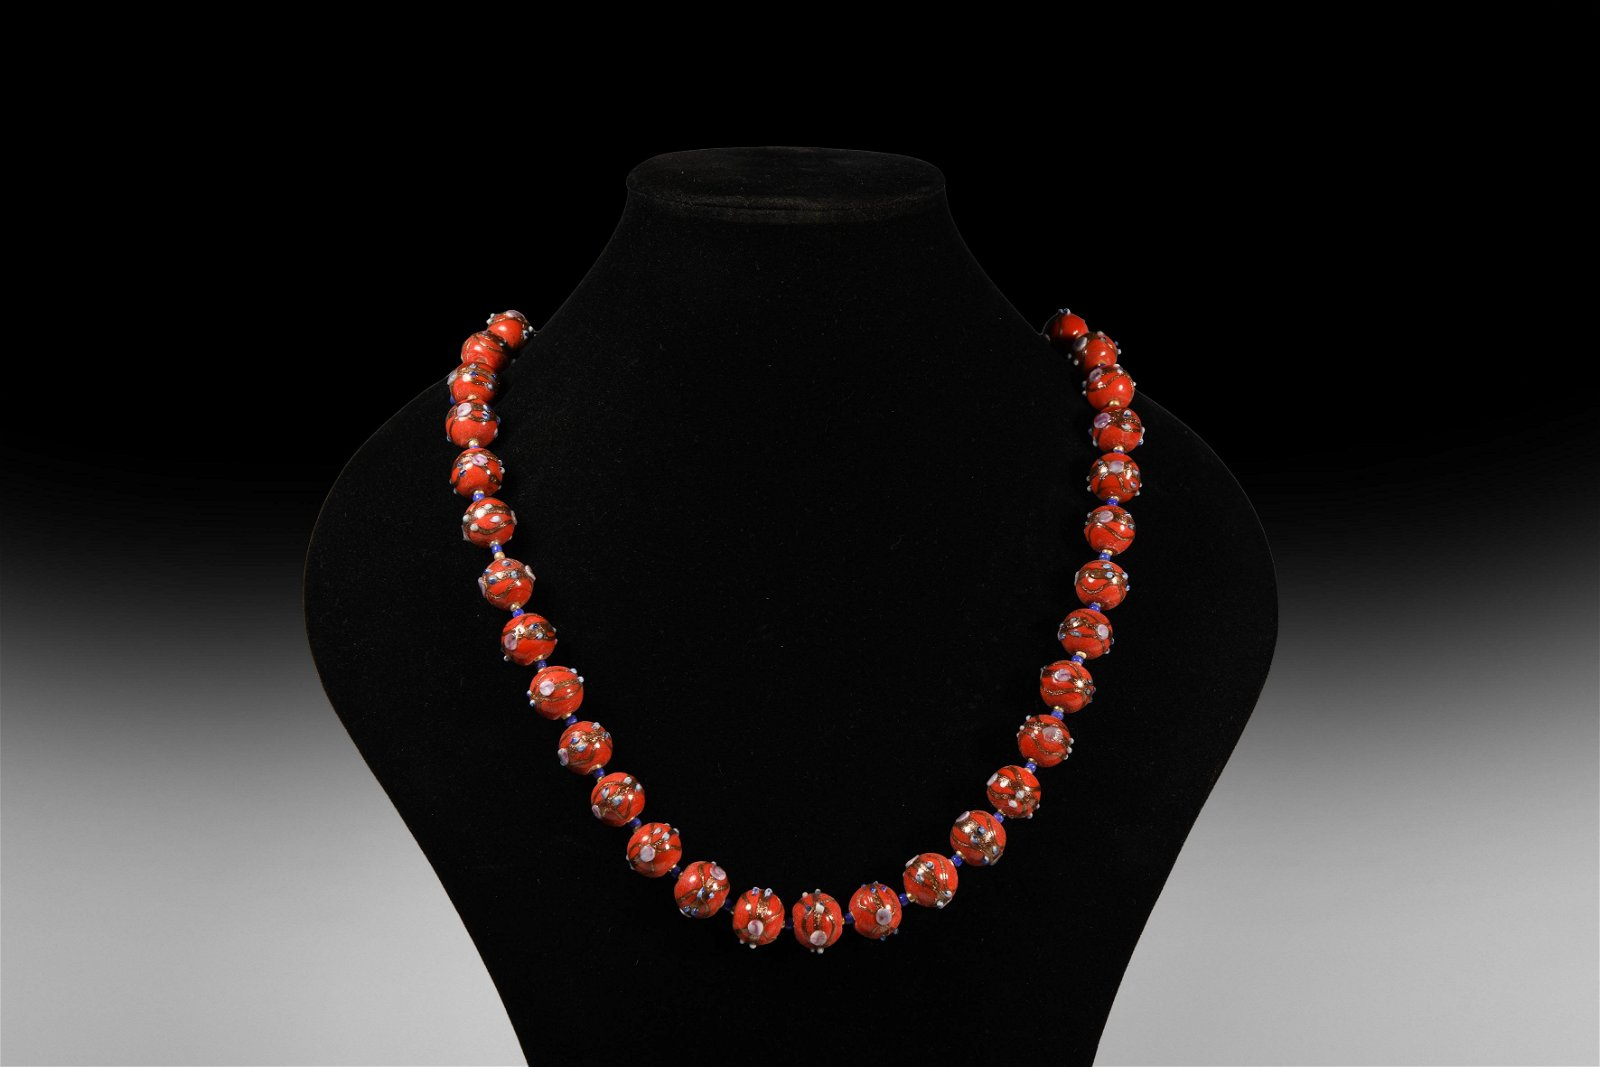 Venetian Style Glass Bead Necklace String